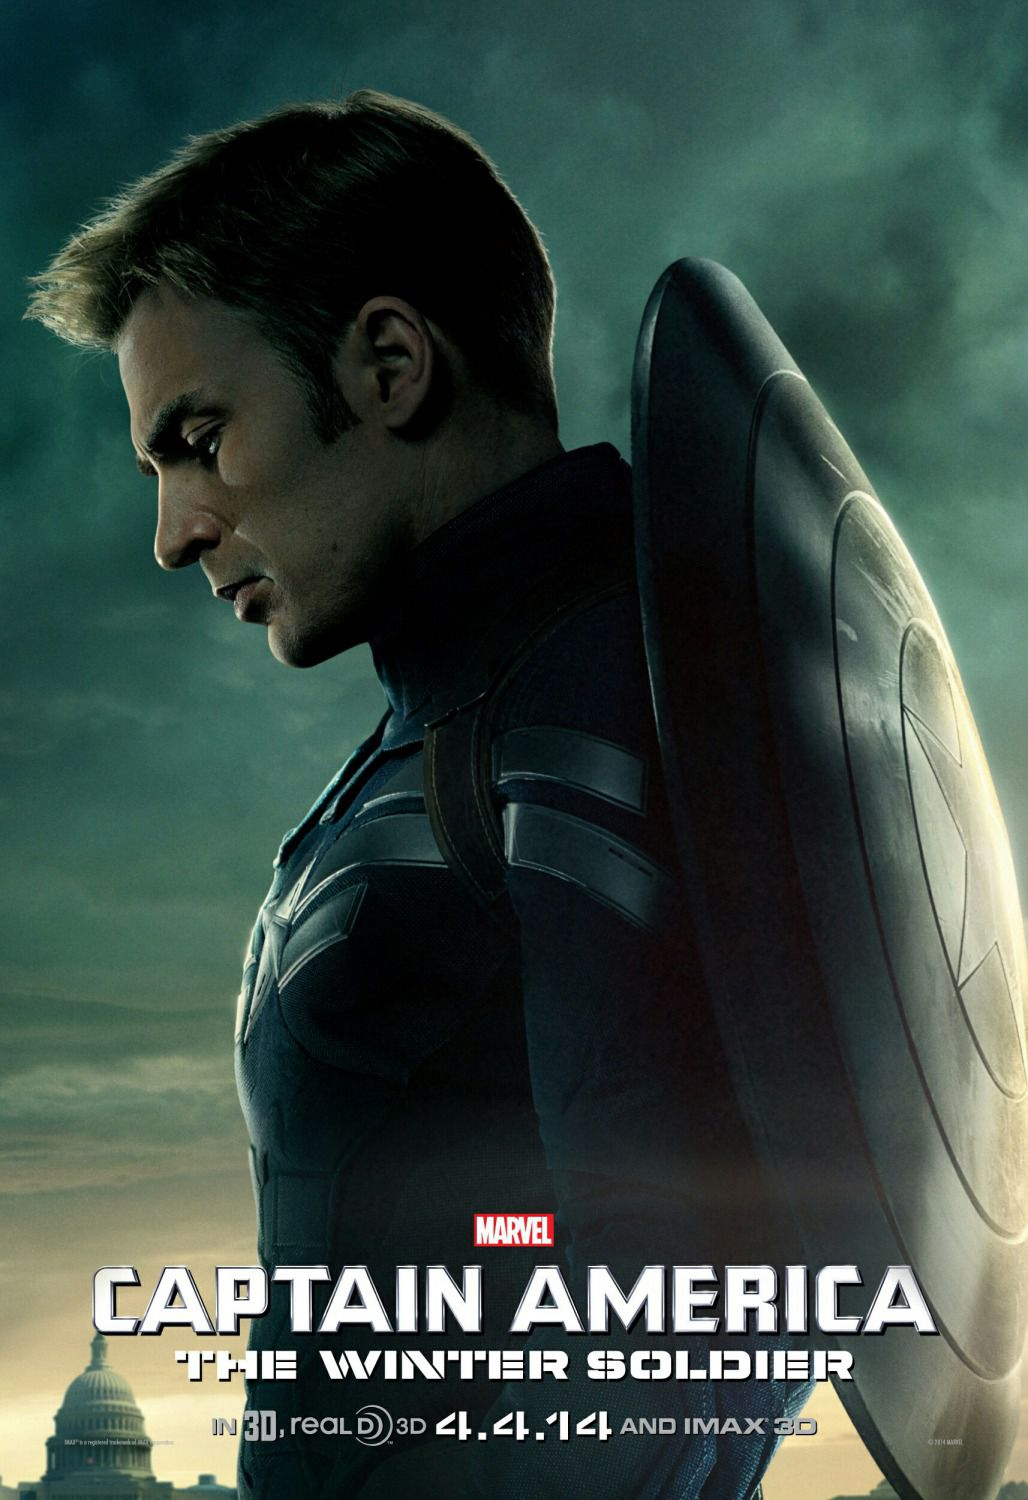 Film - Captain America 2 - the Winter Soldier - Capitan America -  Steve Rogers (Chris Evans)